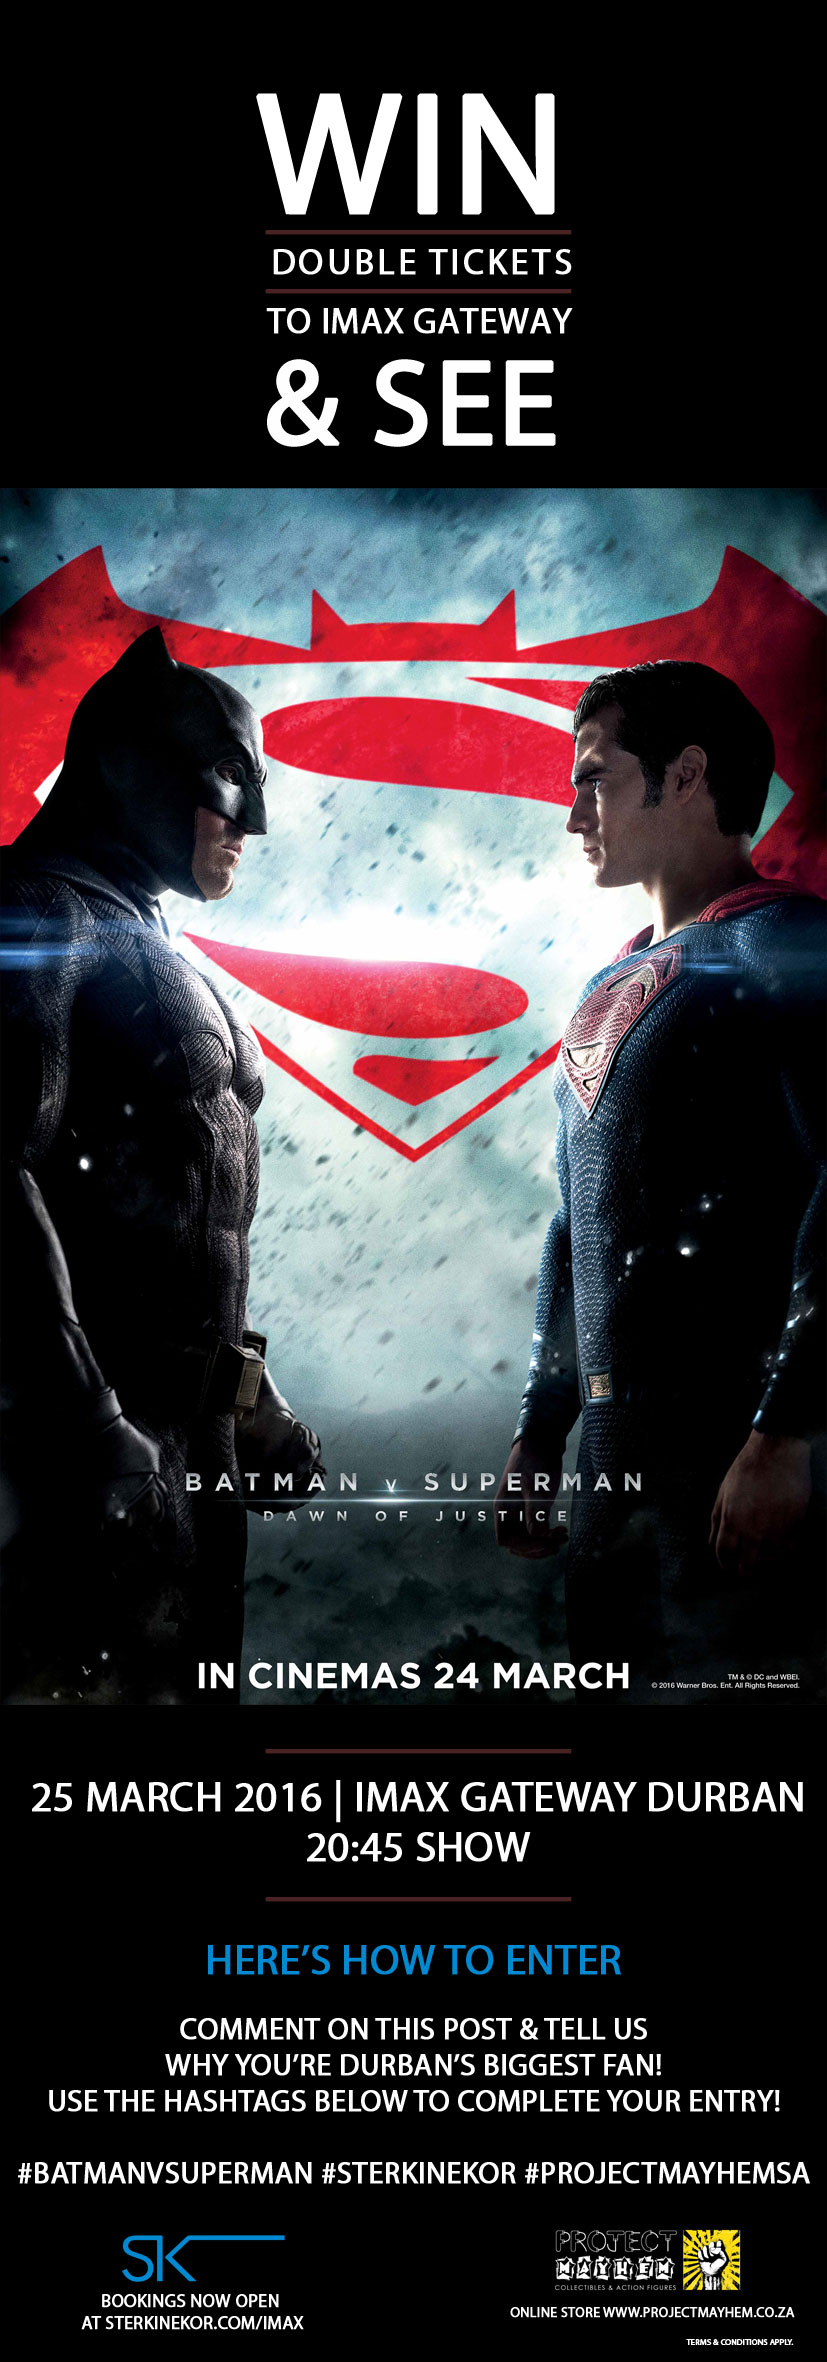 Batman V Superman Dawn of Justice ticket Giveaway with Project Mayhem Durban, South Africa and Ster Kinekor IMAX Durban